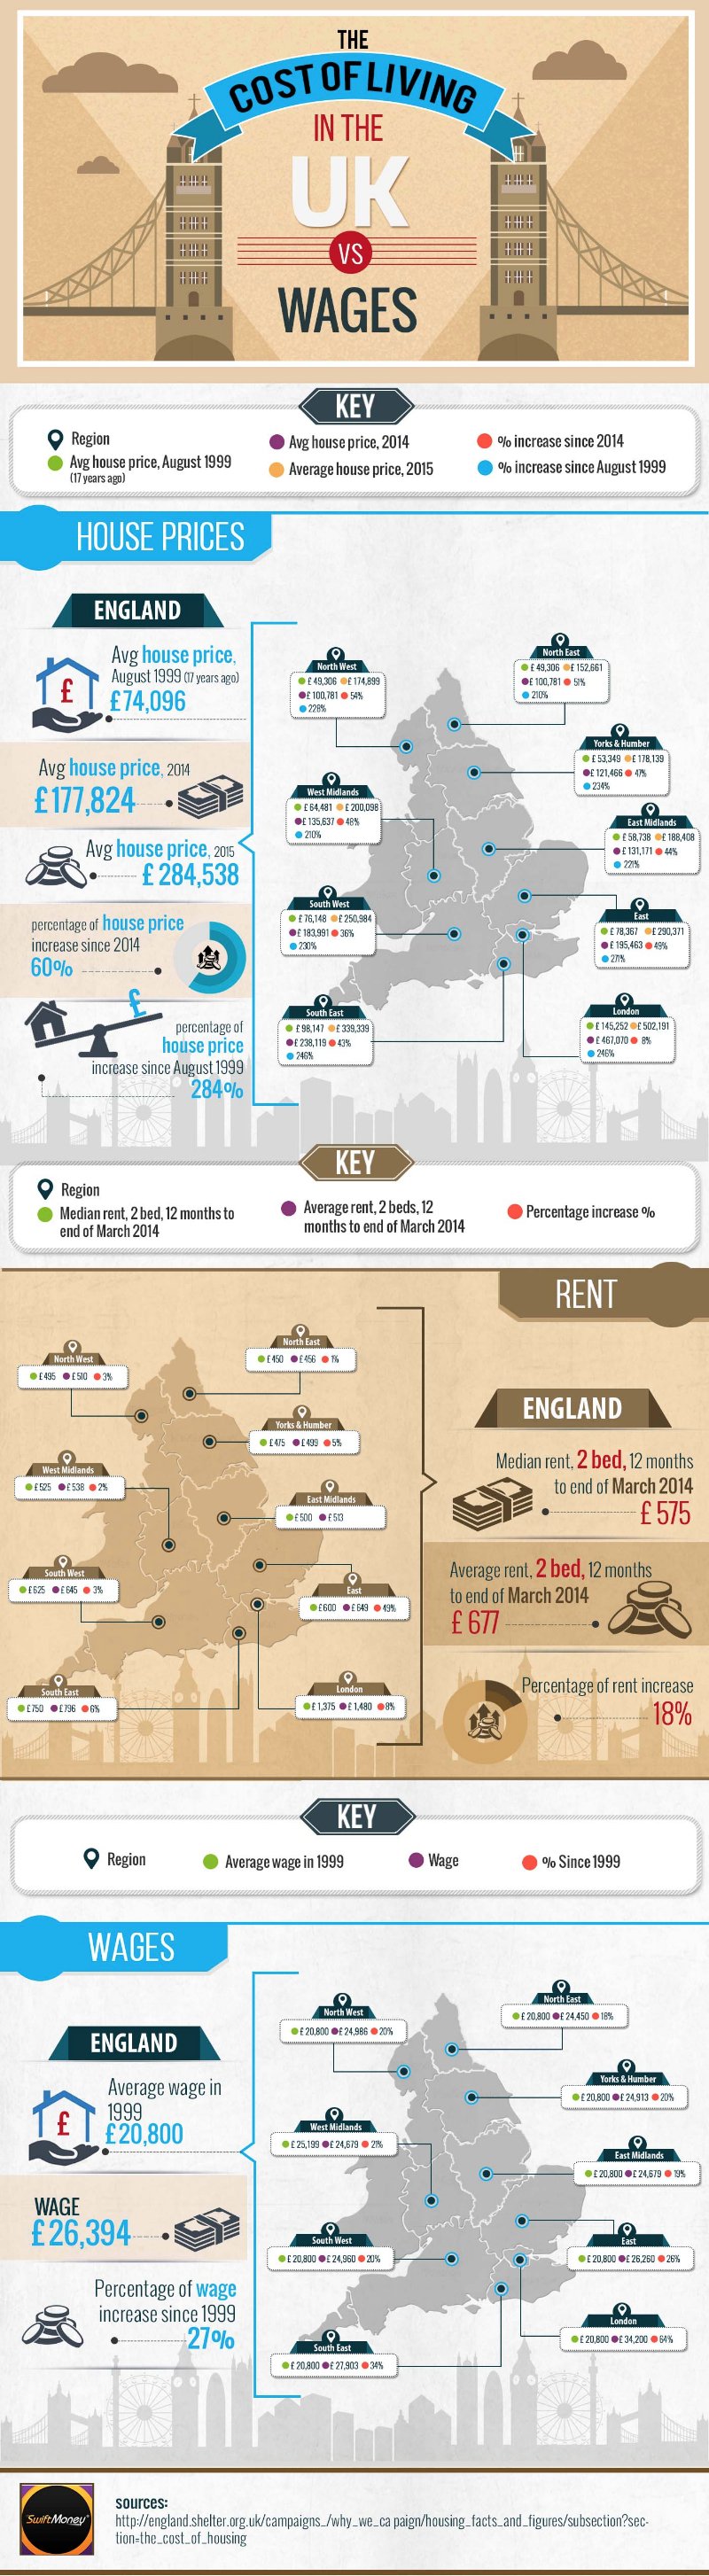 the cost of living in the UK infographic